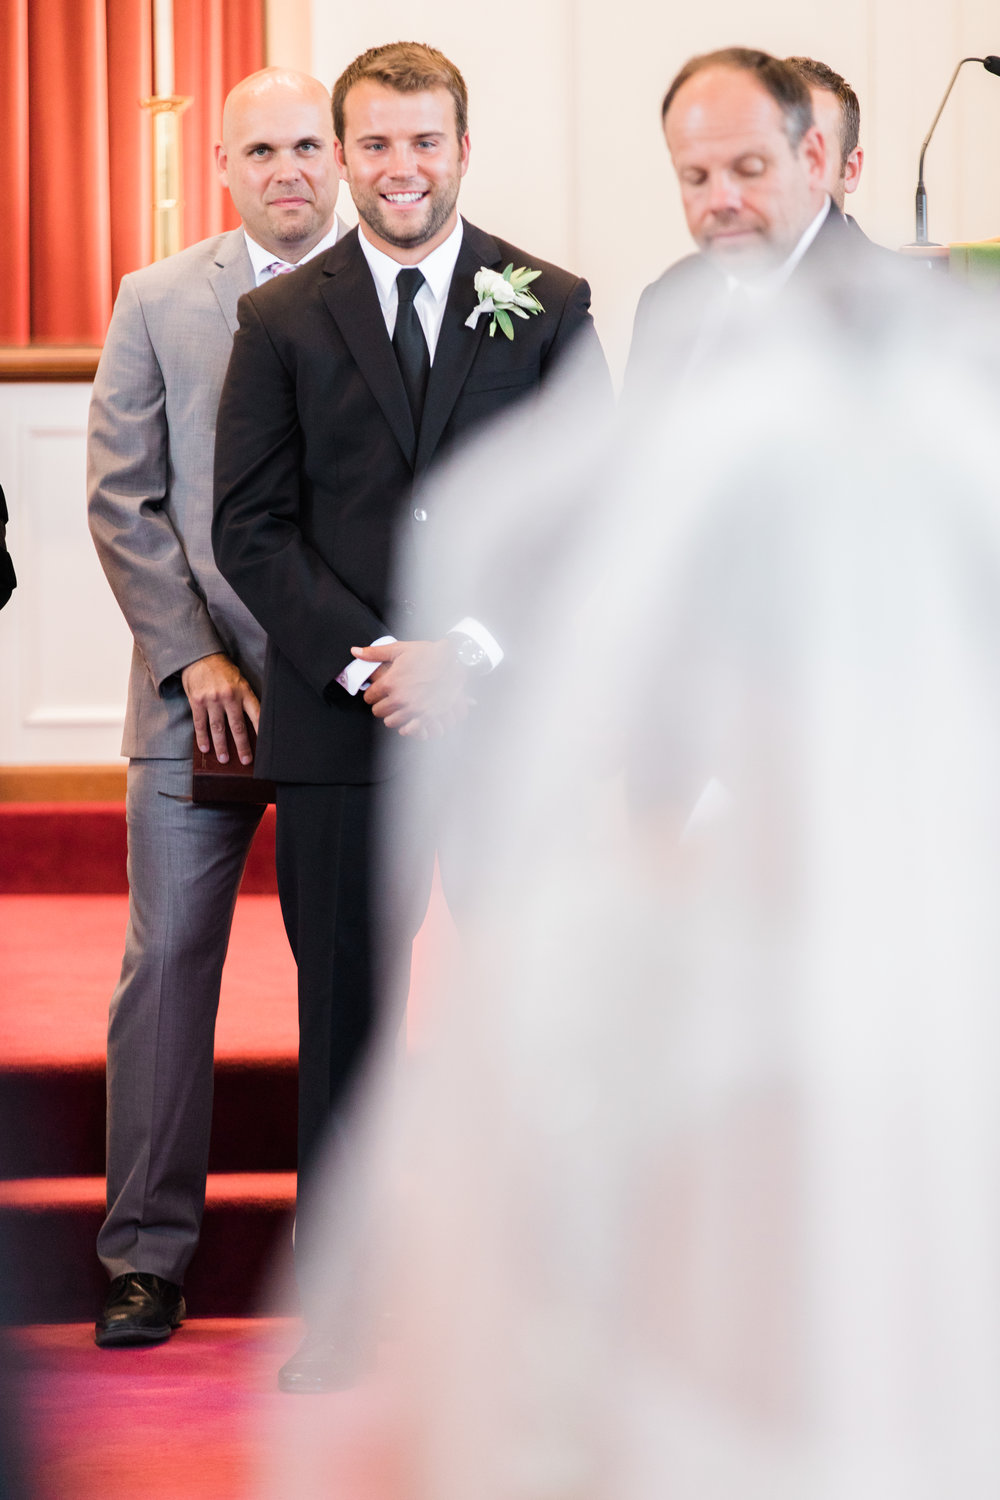 Terrell+Wedding+Ceremony-117.jpg